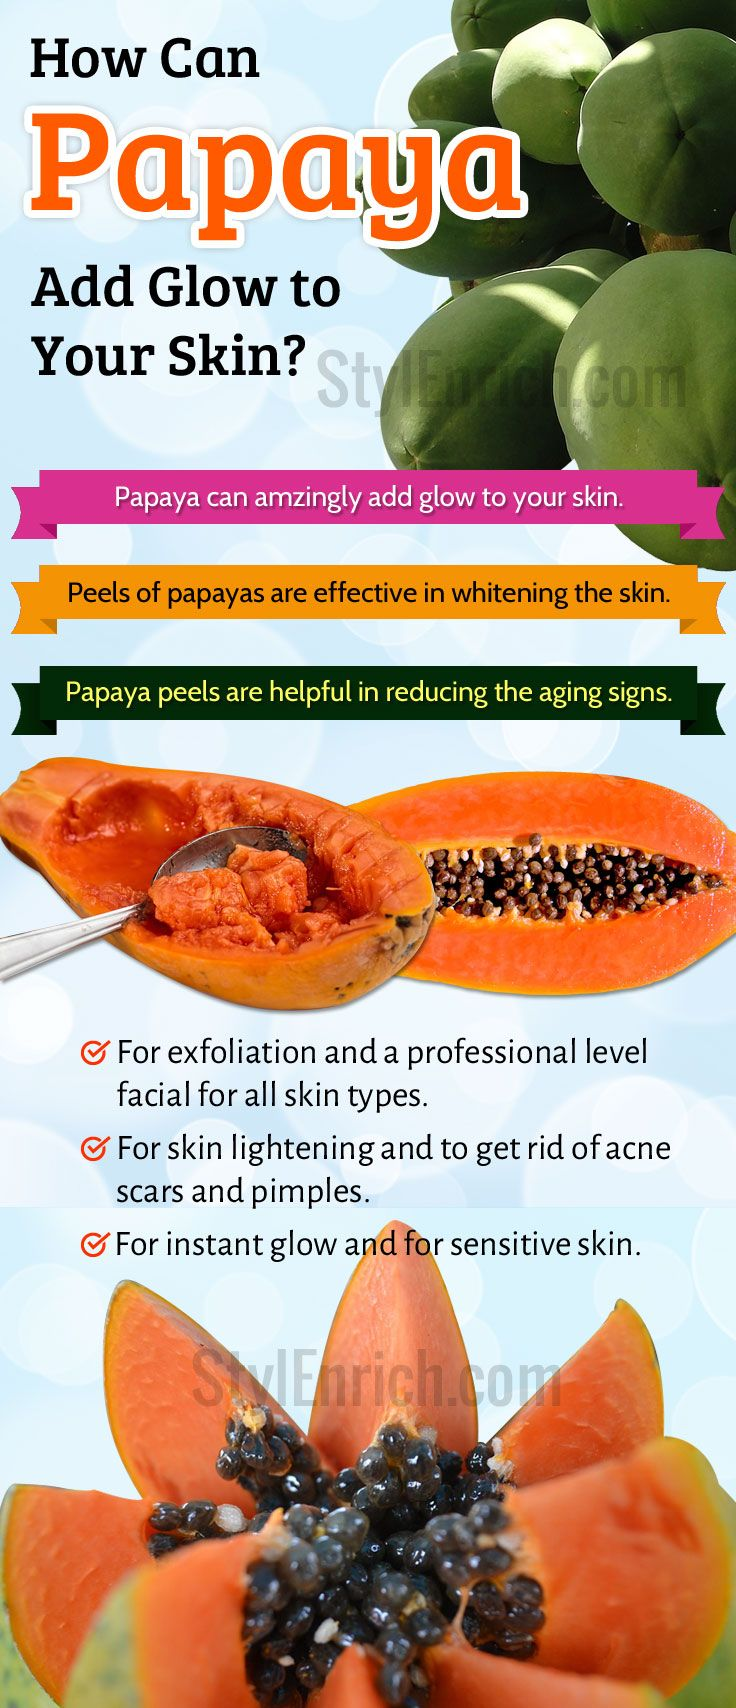 #Papaya can be extremely good #DIYSkinCare treatment when you desire for a glowing skin. Not only the fruit, papaya peel, raw papaya and even seed can also help in achieving beautiful skin. We can use it without causing any adverse side effects. Read to know more about How Can Papaya Add Glow to Your Skin.